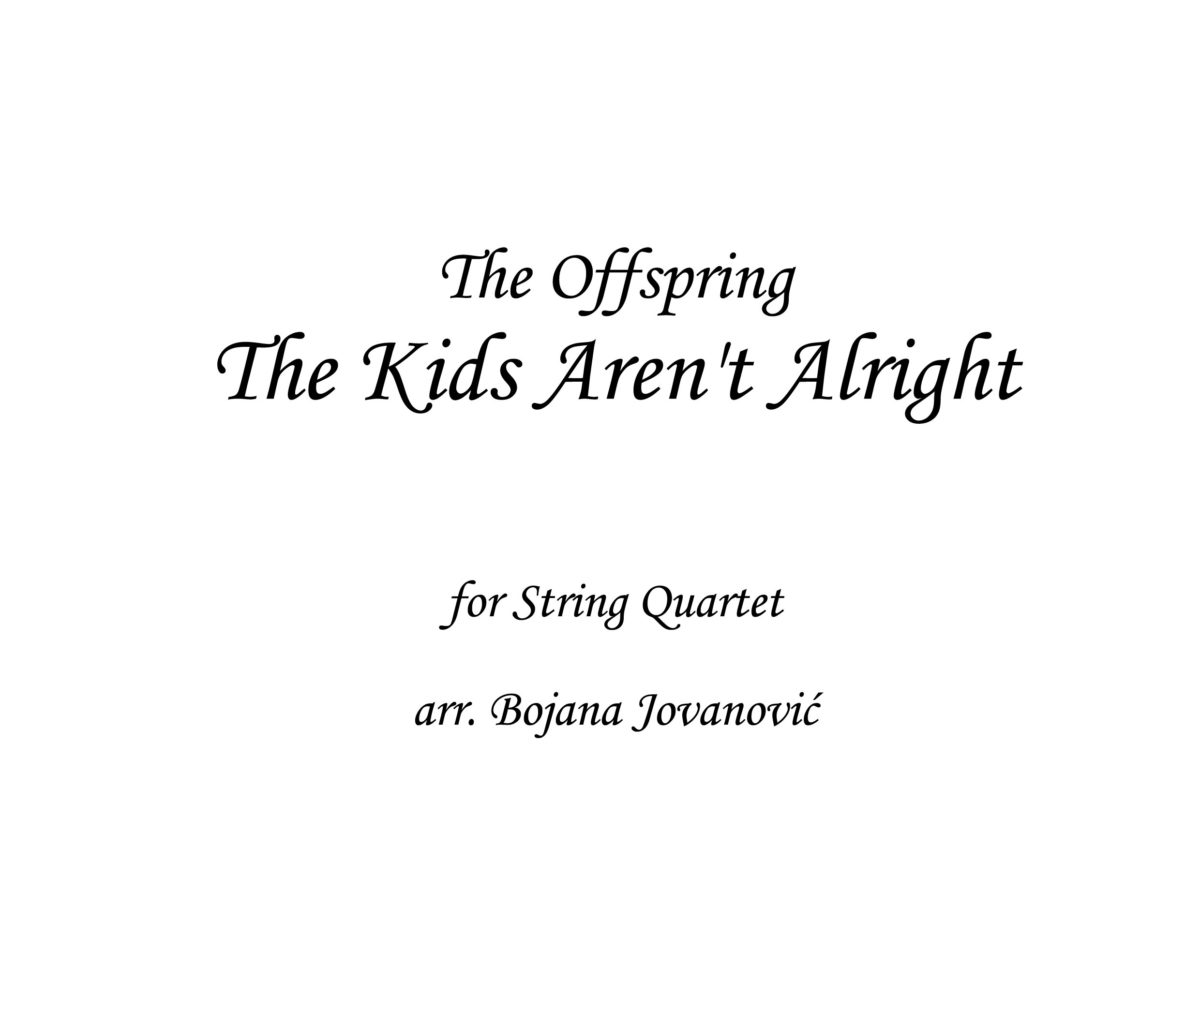 The Kids Aren't Alright The Offspring Sheet music